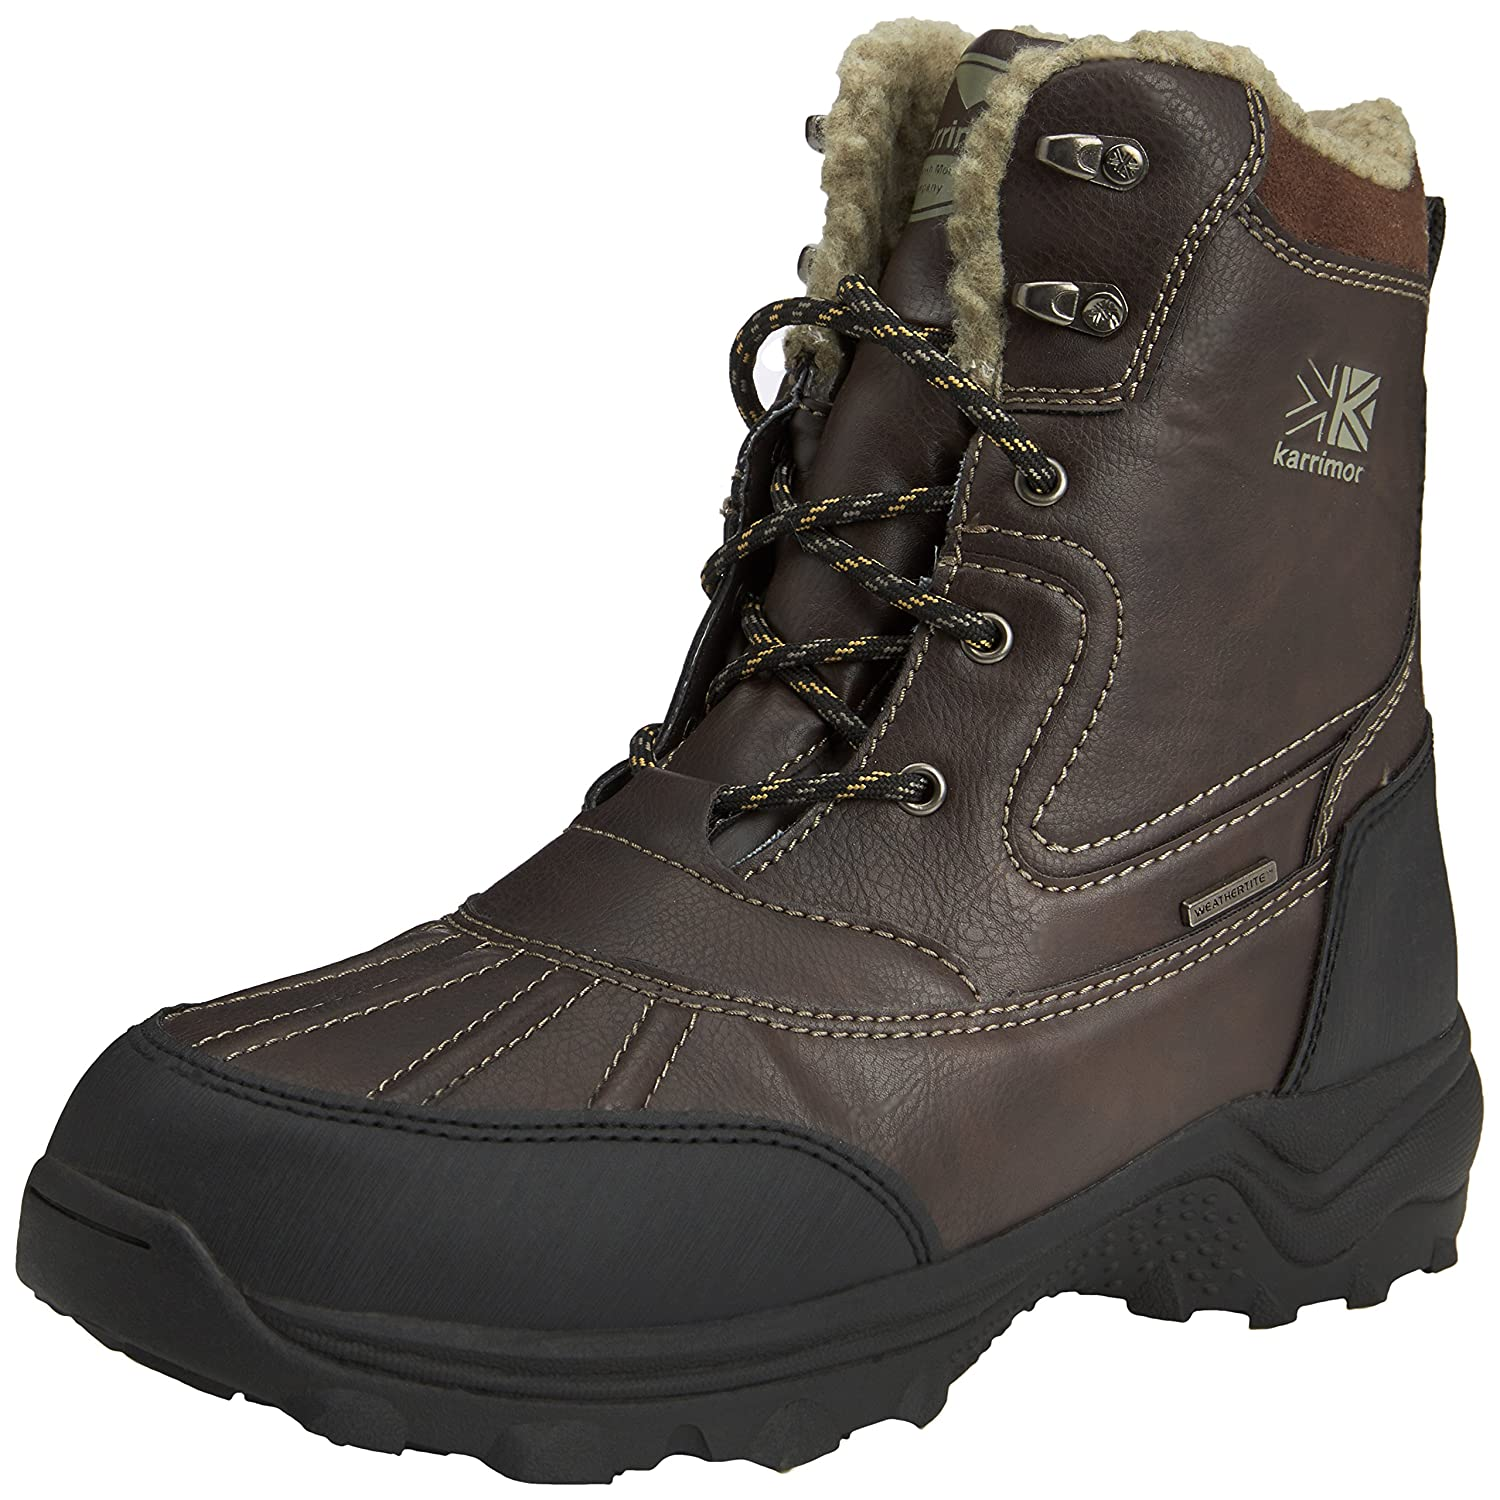 Karrimor Snow Casual Weathertite High Rise Hiking de cuero hombre